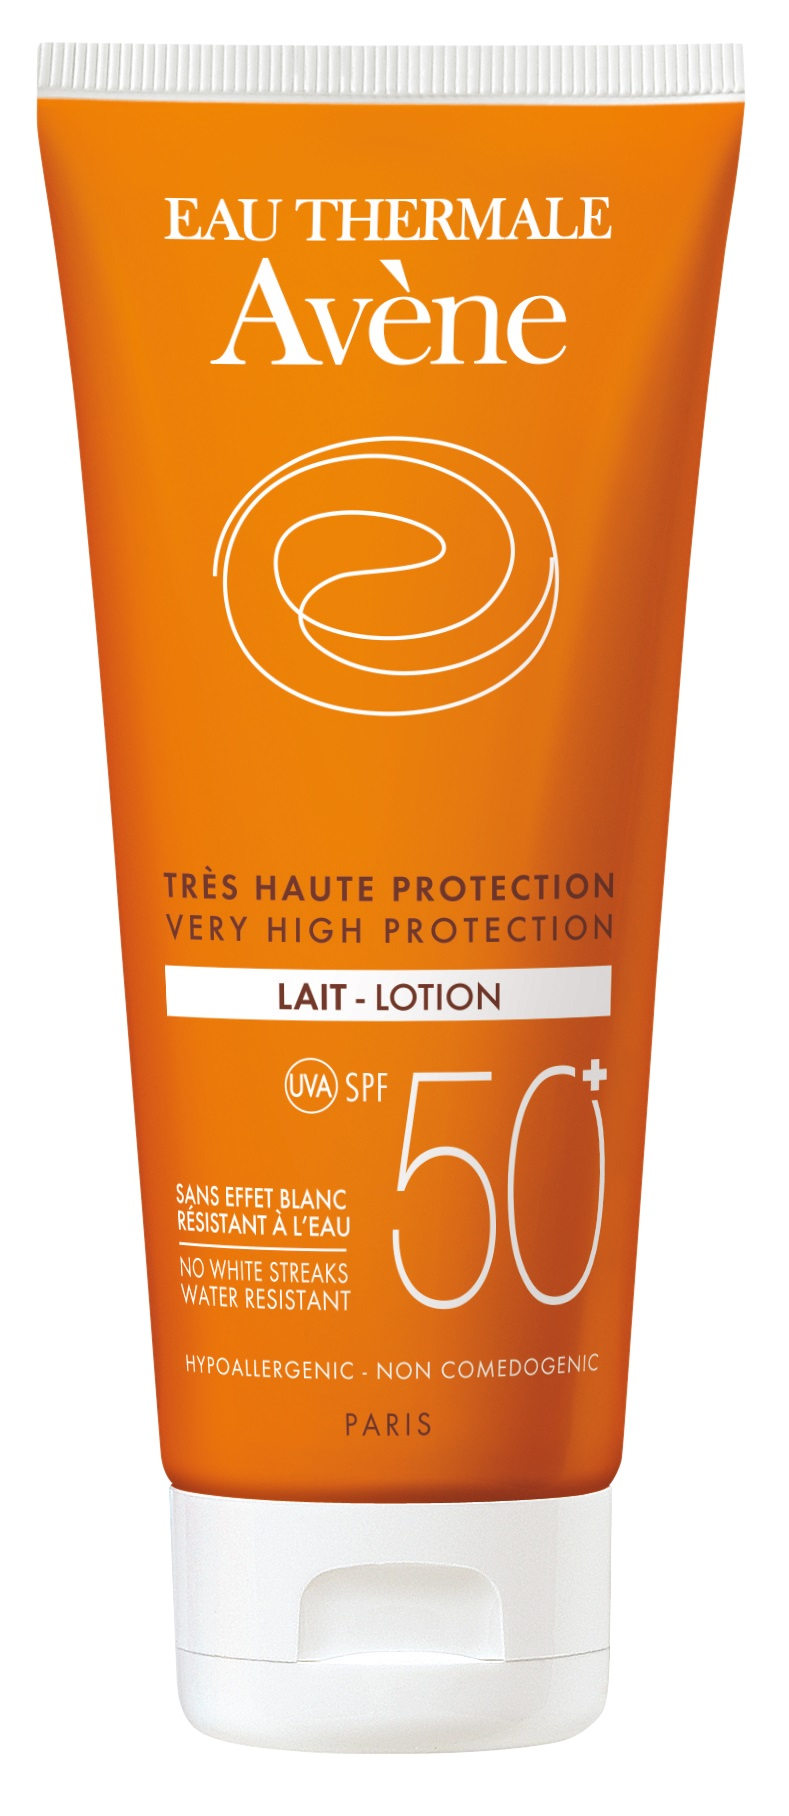 AVENE (Pierre Fabre It. SpA) Avene Solare Latte Corpo Spf50+ 100ml